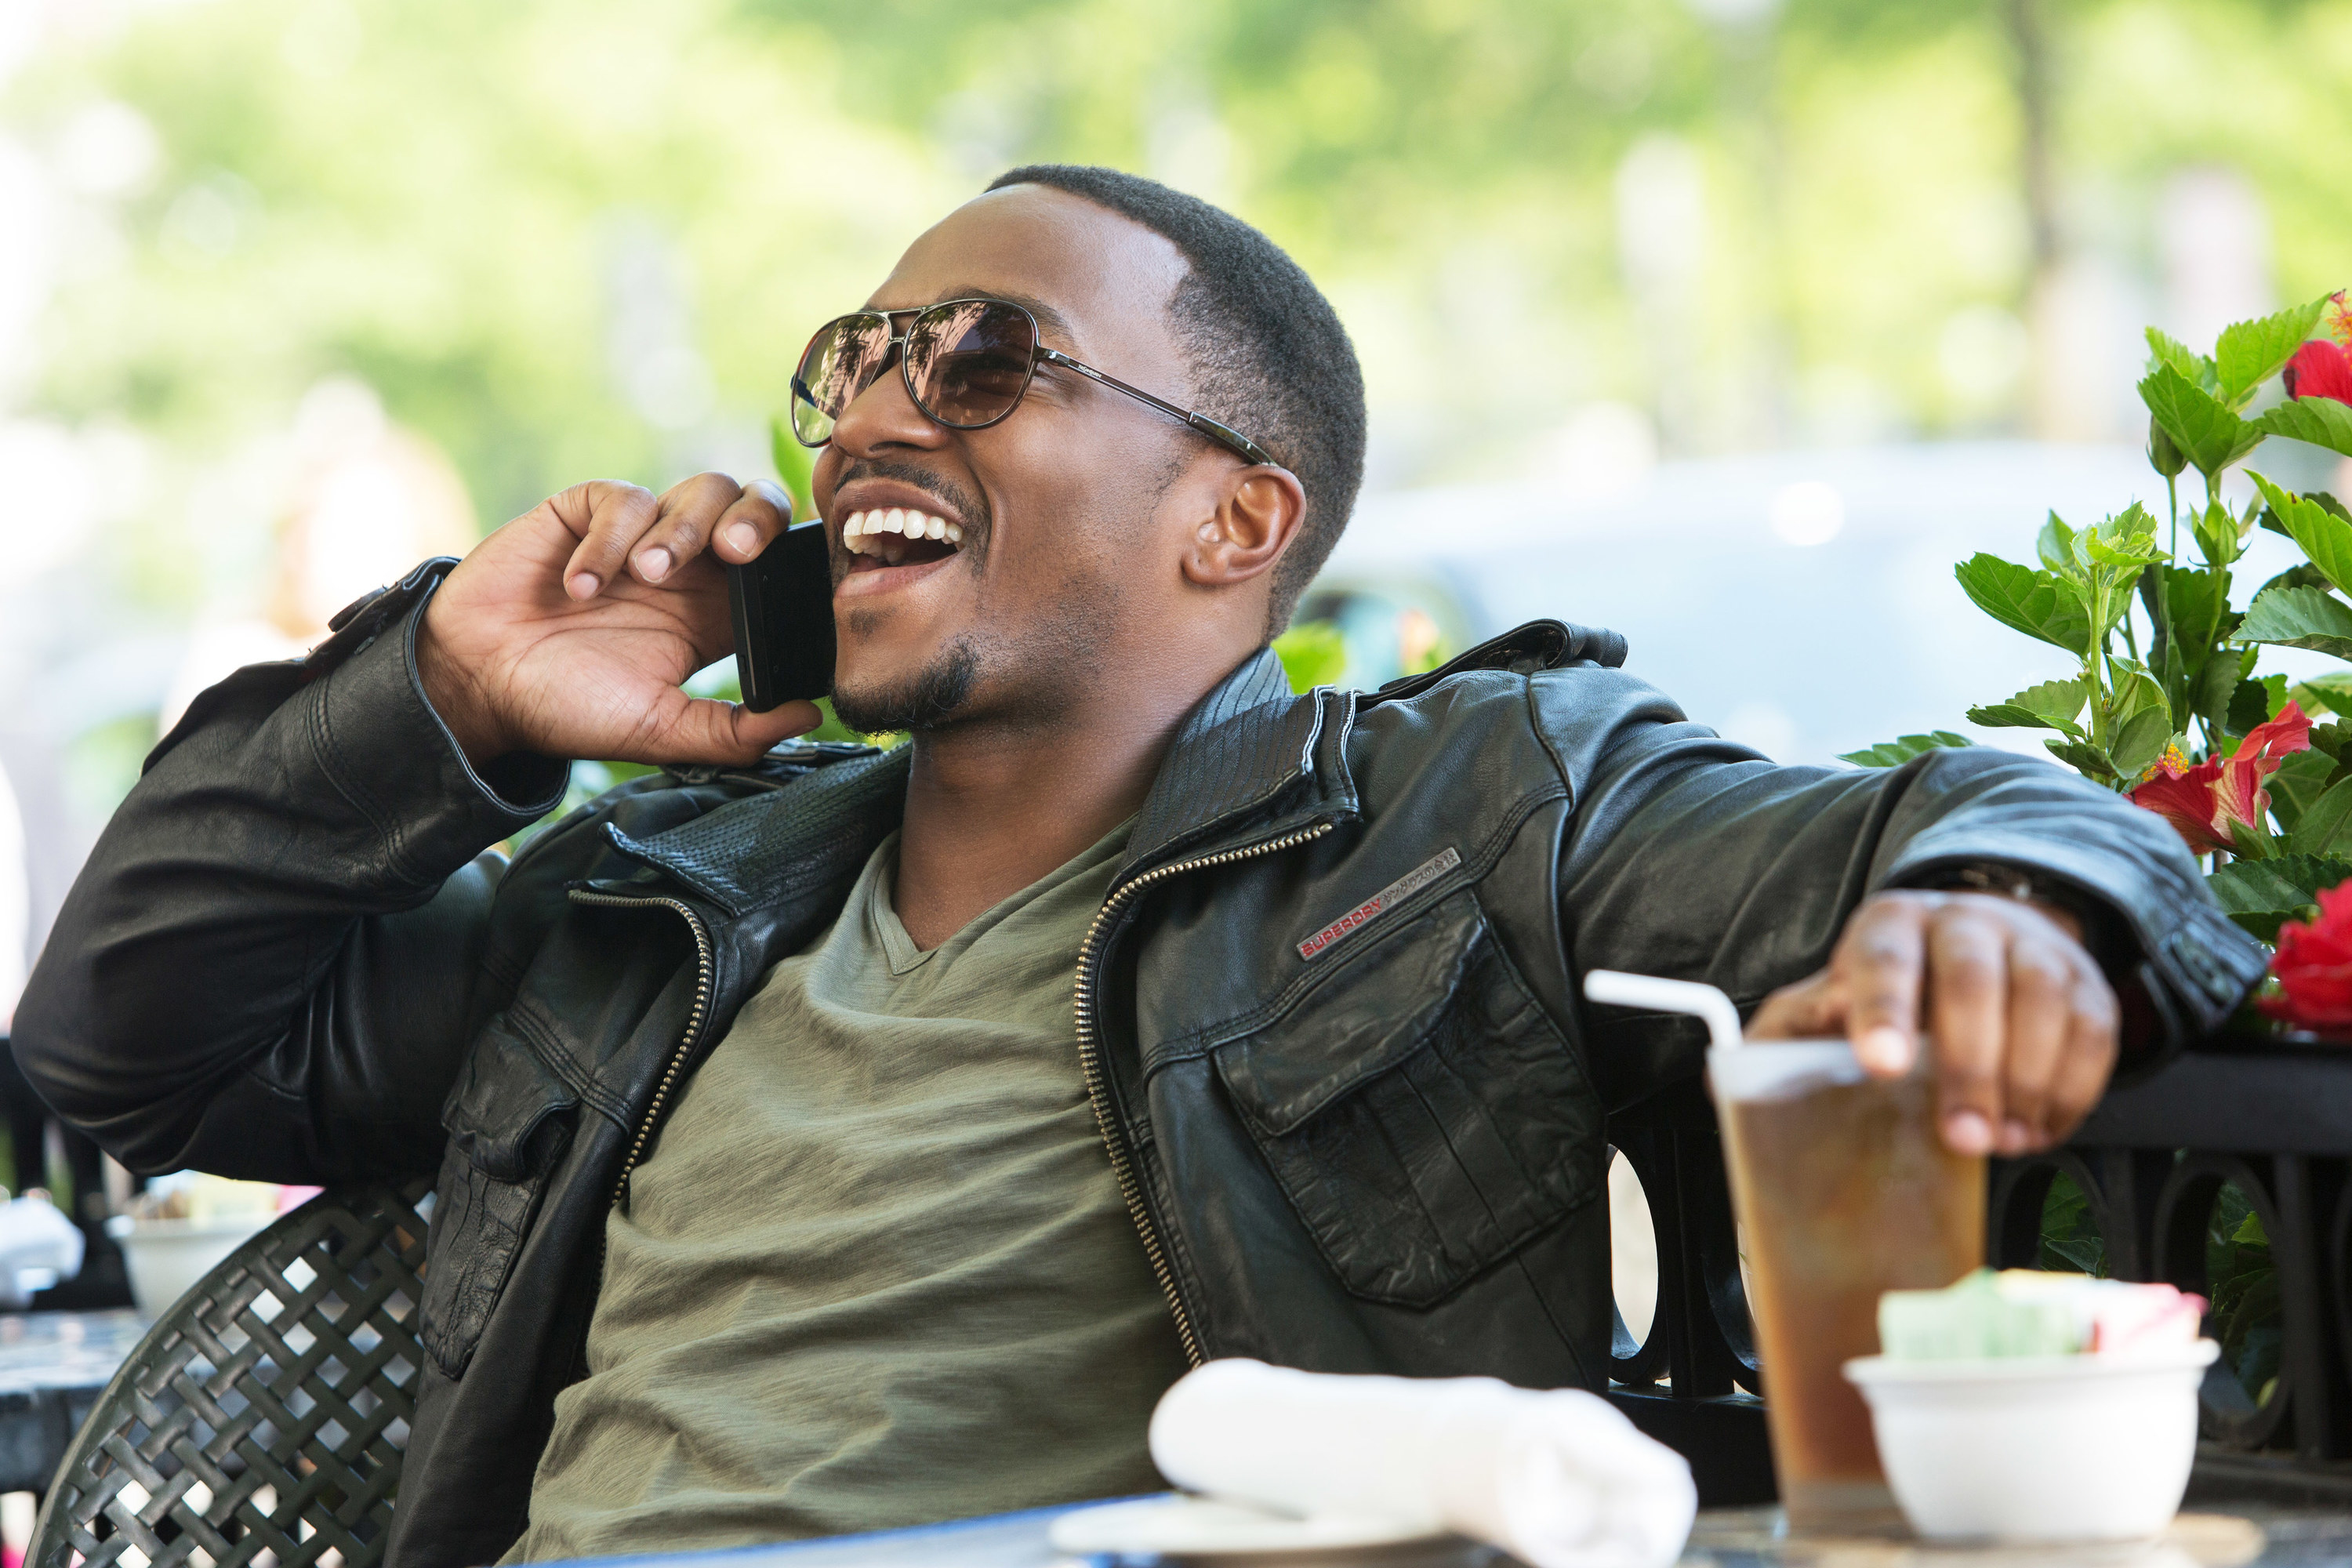 Anthony Mackie laughs while on the phone in Captain America: The Winter Soldier